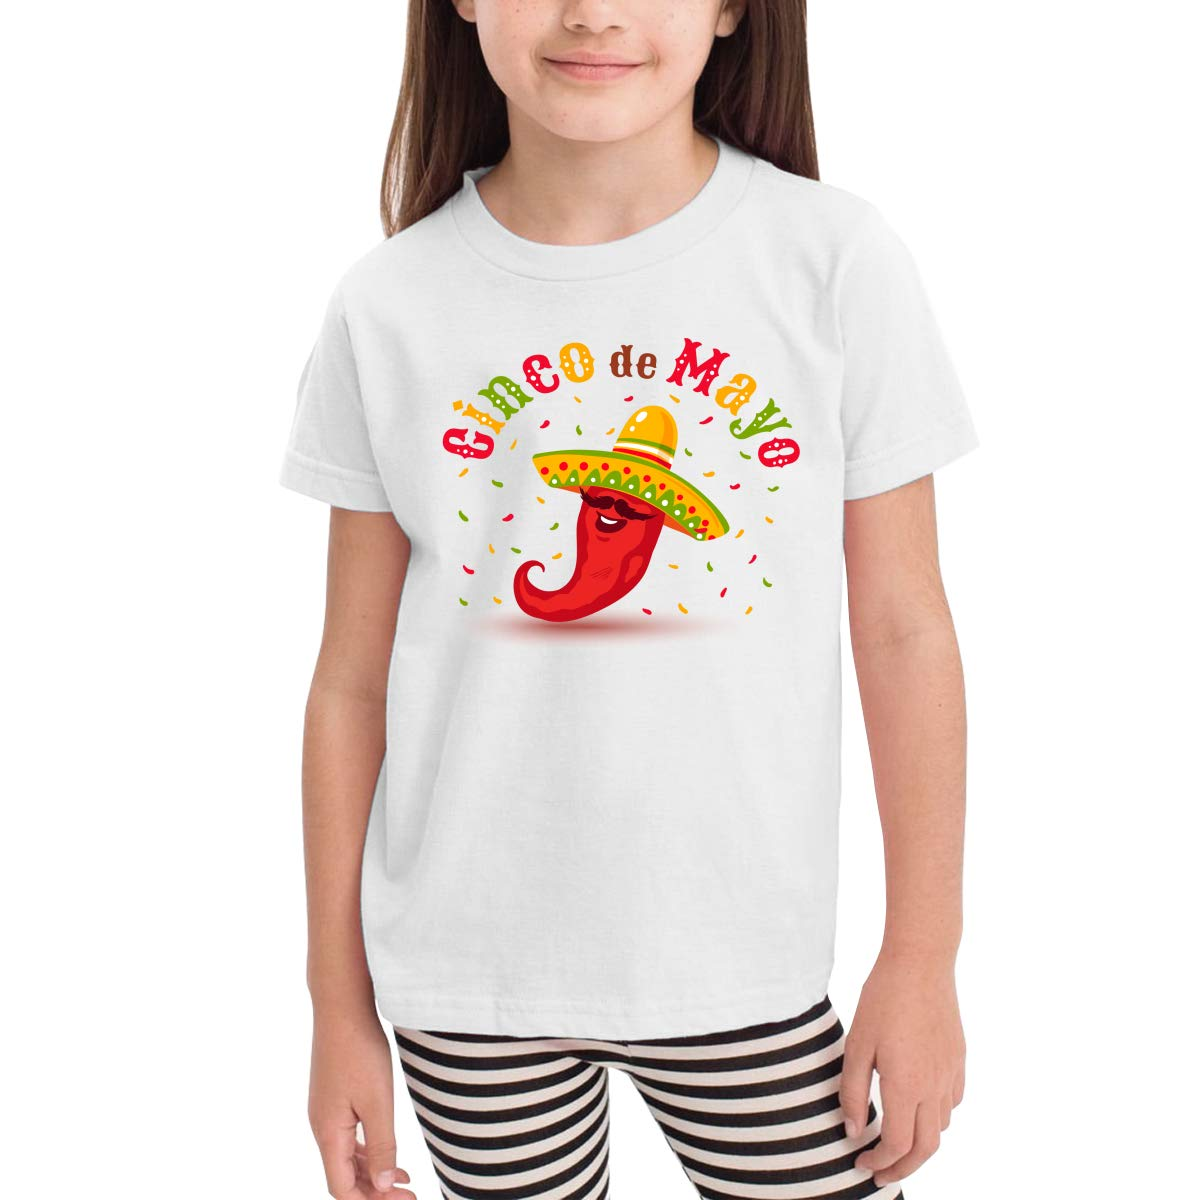 Chili in Mexico Toddler Boys Girls Short Sleeve T Shirt Kids Summer Top Tee 100/% Cotton Clothes 2-6 T